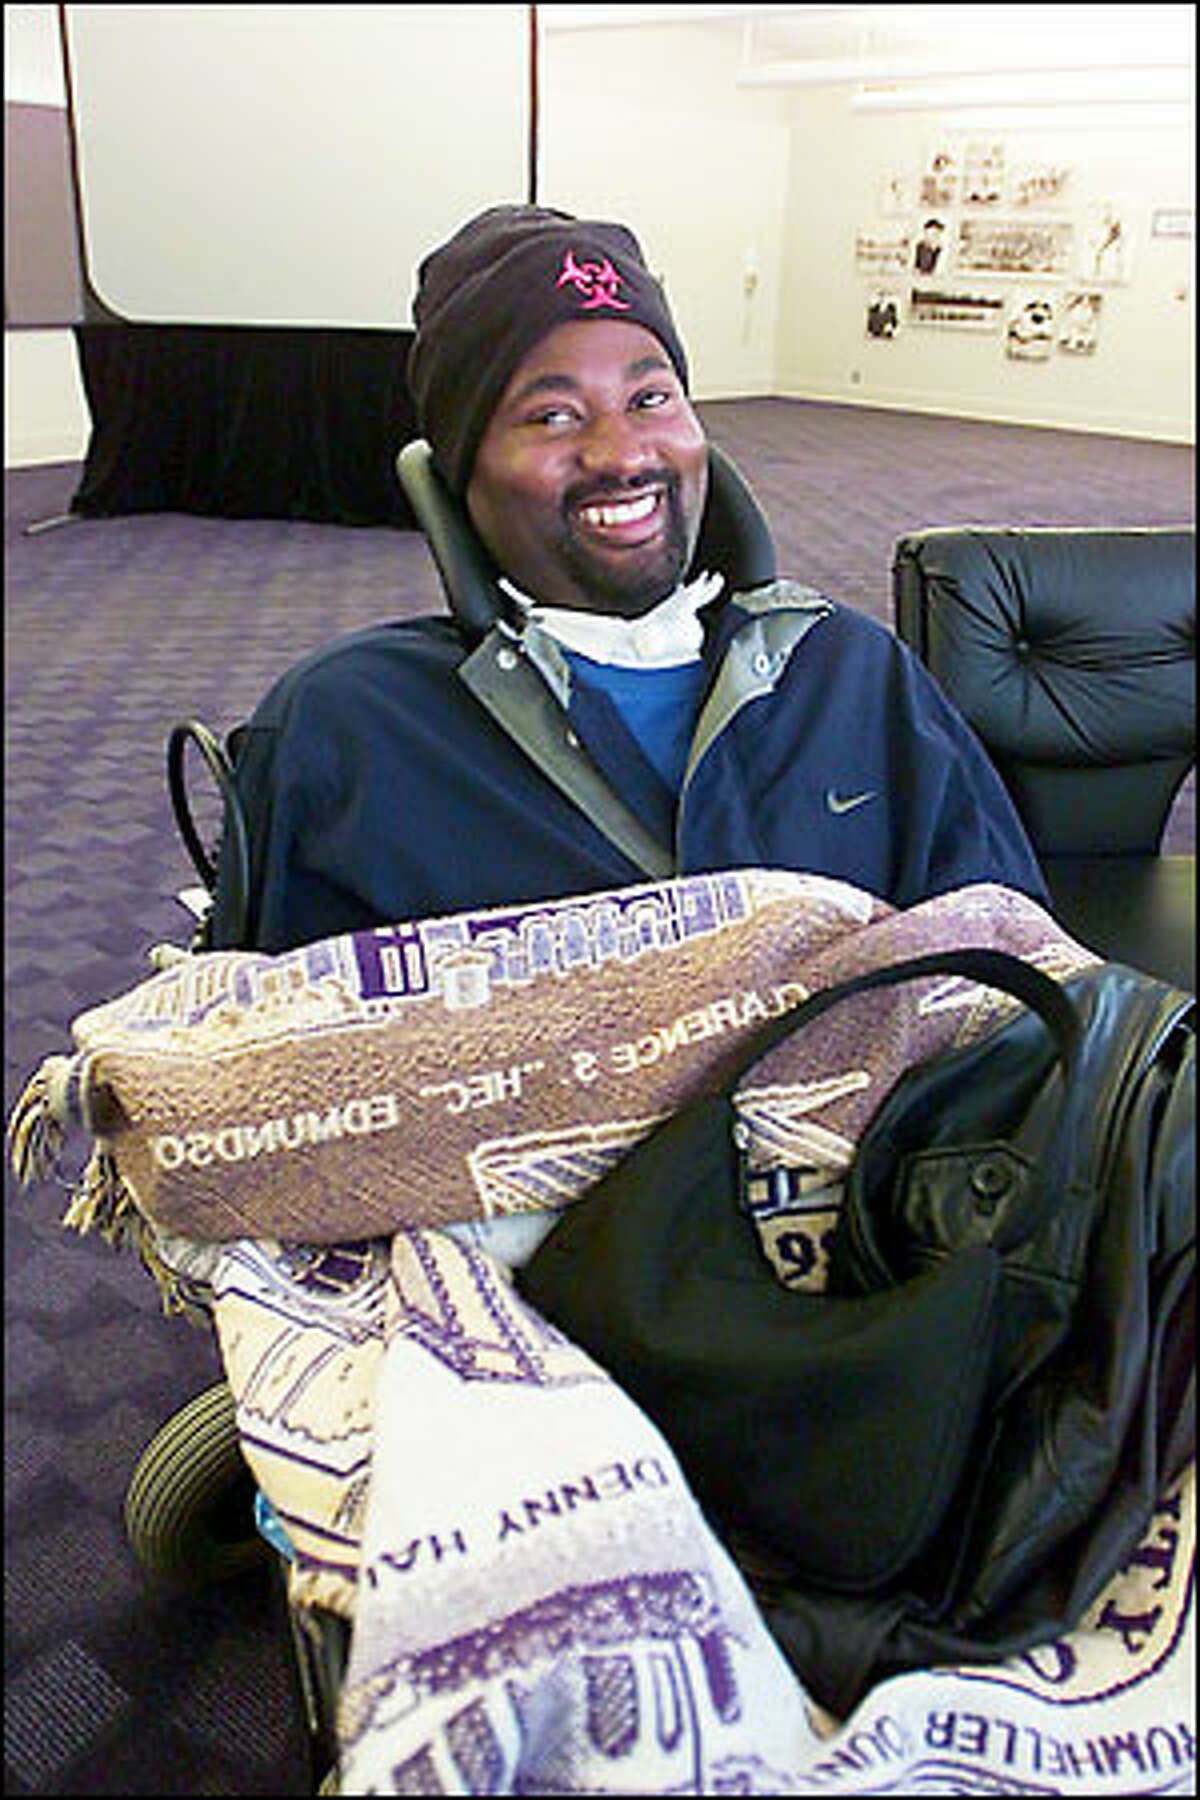 Curtis Williams, who died yesterday, two days after his 24th birthday, was at Husky Stadium two weeks ago to watch the UW spring game.